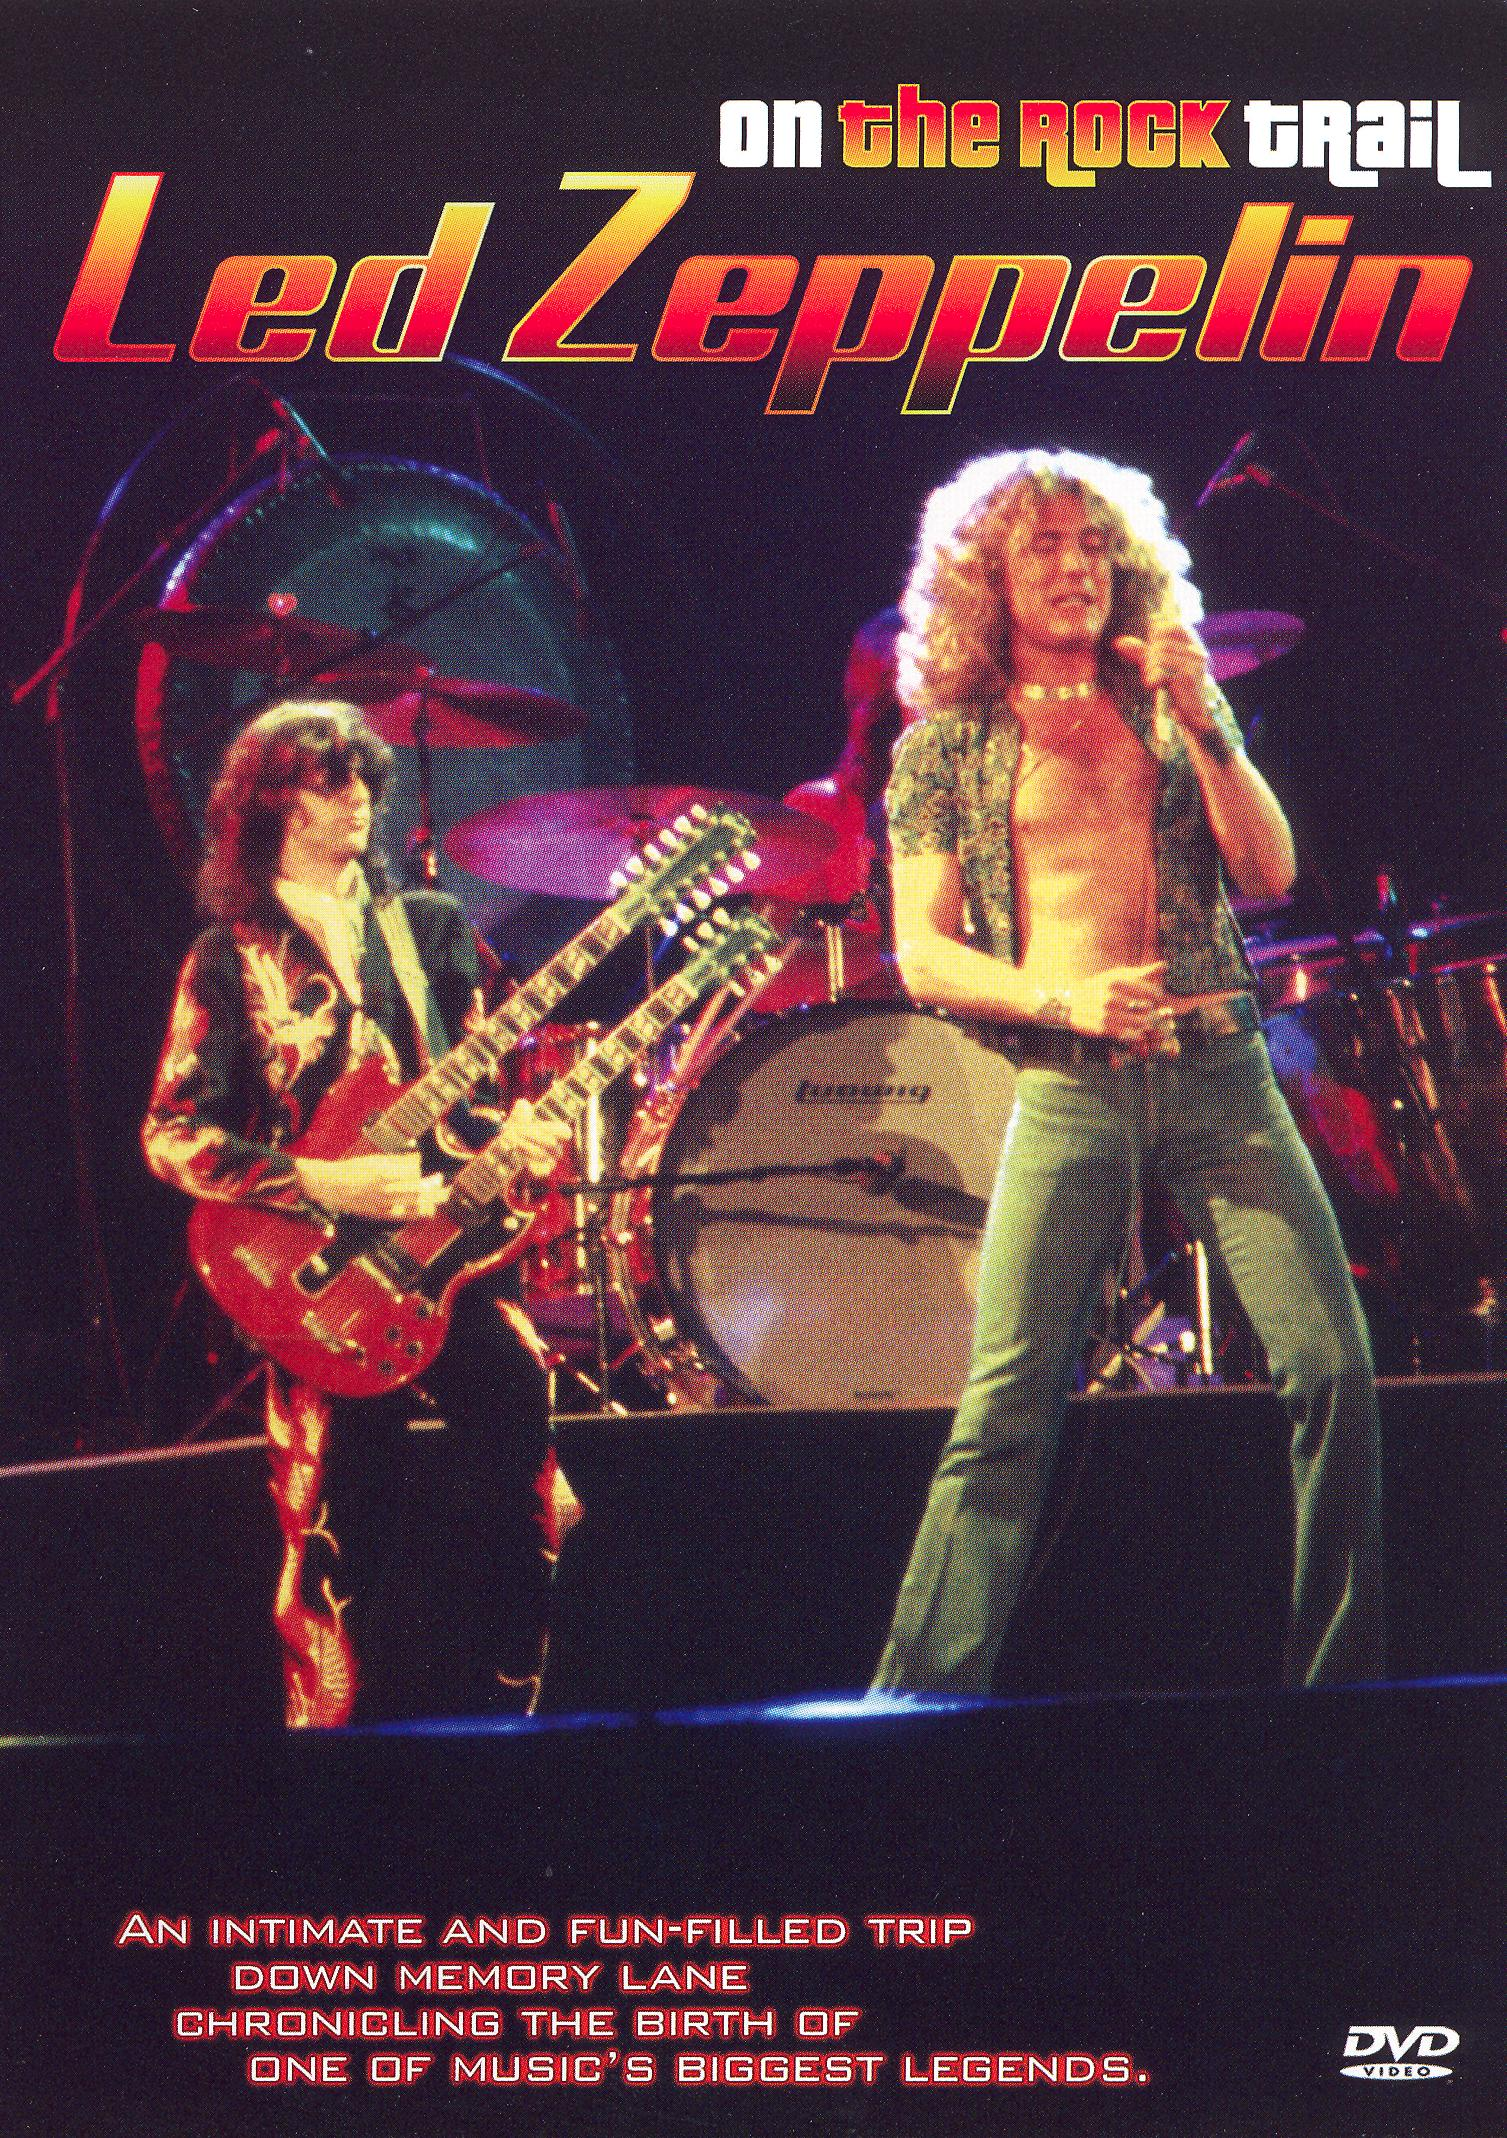 On the Rock Trail: Led Zeppelin